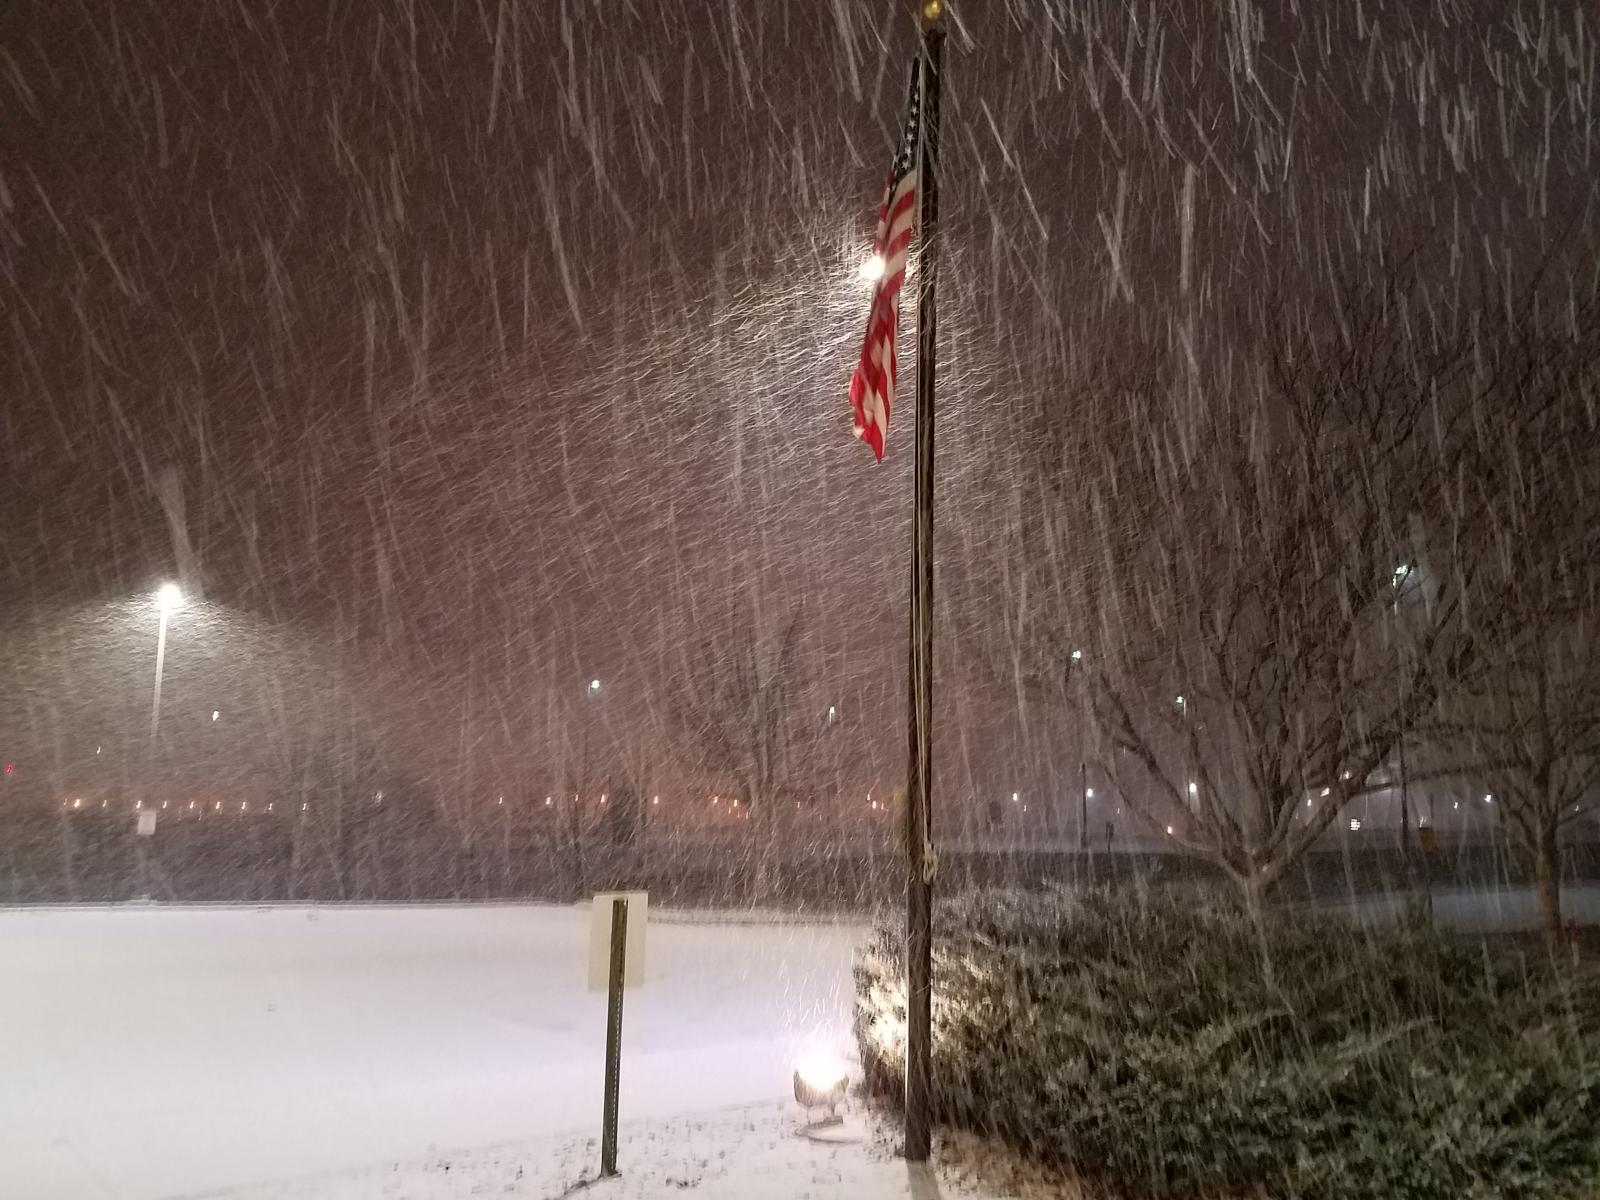 Snow falling at the Weather Forecast Office in Grand Junction